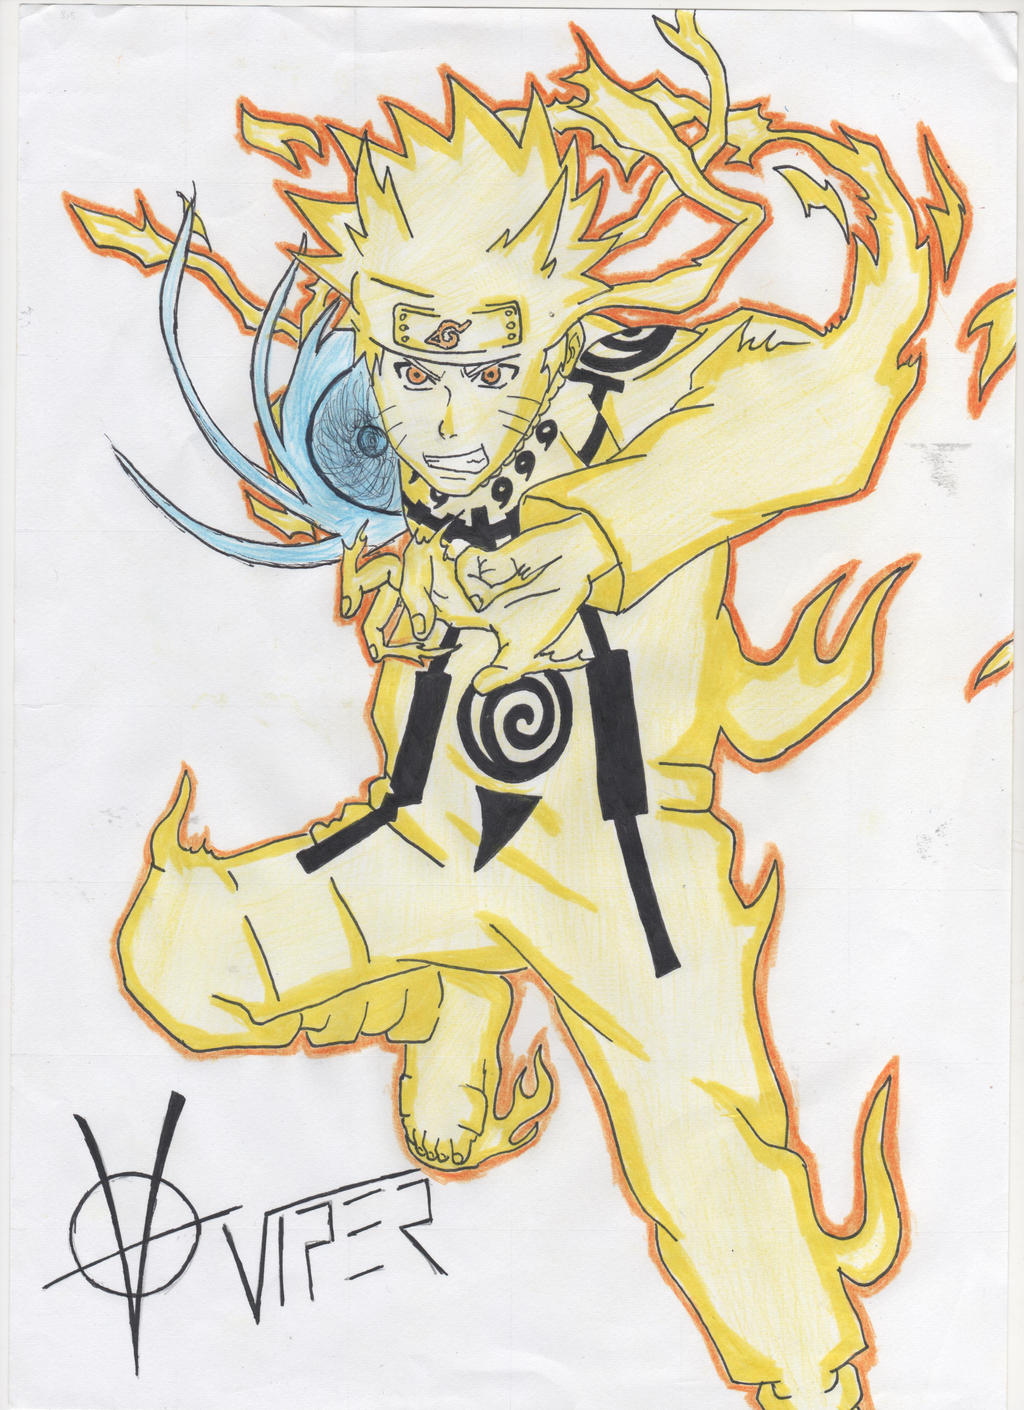 Naruto Kyuubi Mode (Colored) by Viper-Assassin on DeviantArt